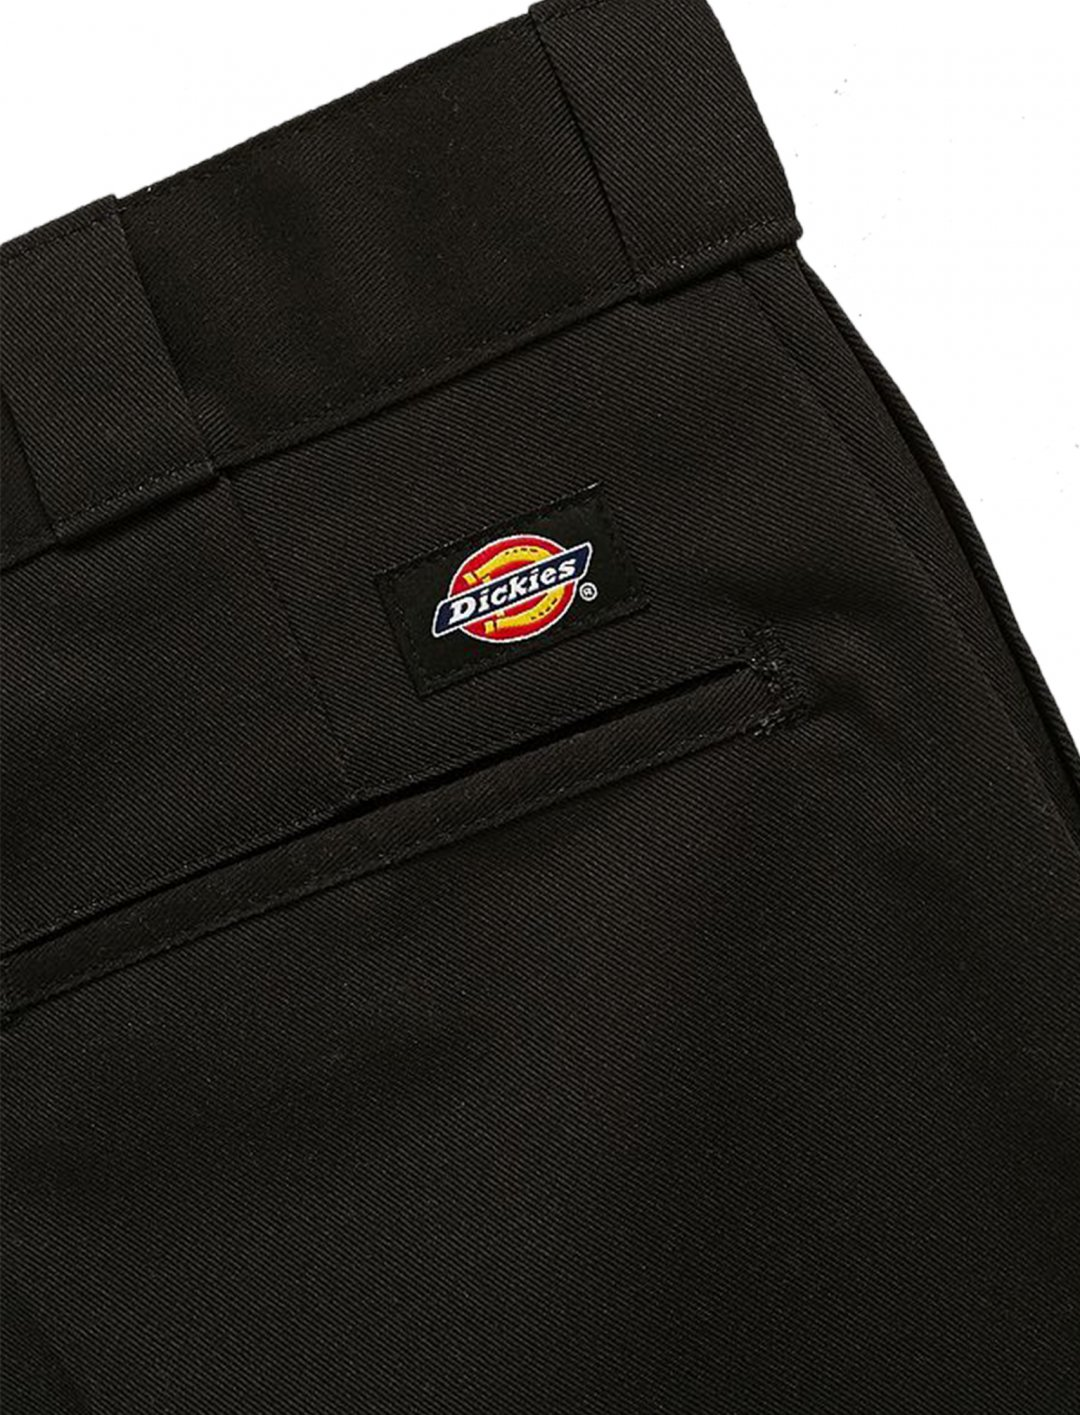 "Dickies 874 Black Work Trousers {""id"":5,""product_section_id"":1,""name"":""Clothing"",""order"":5} Dickies 874"